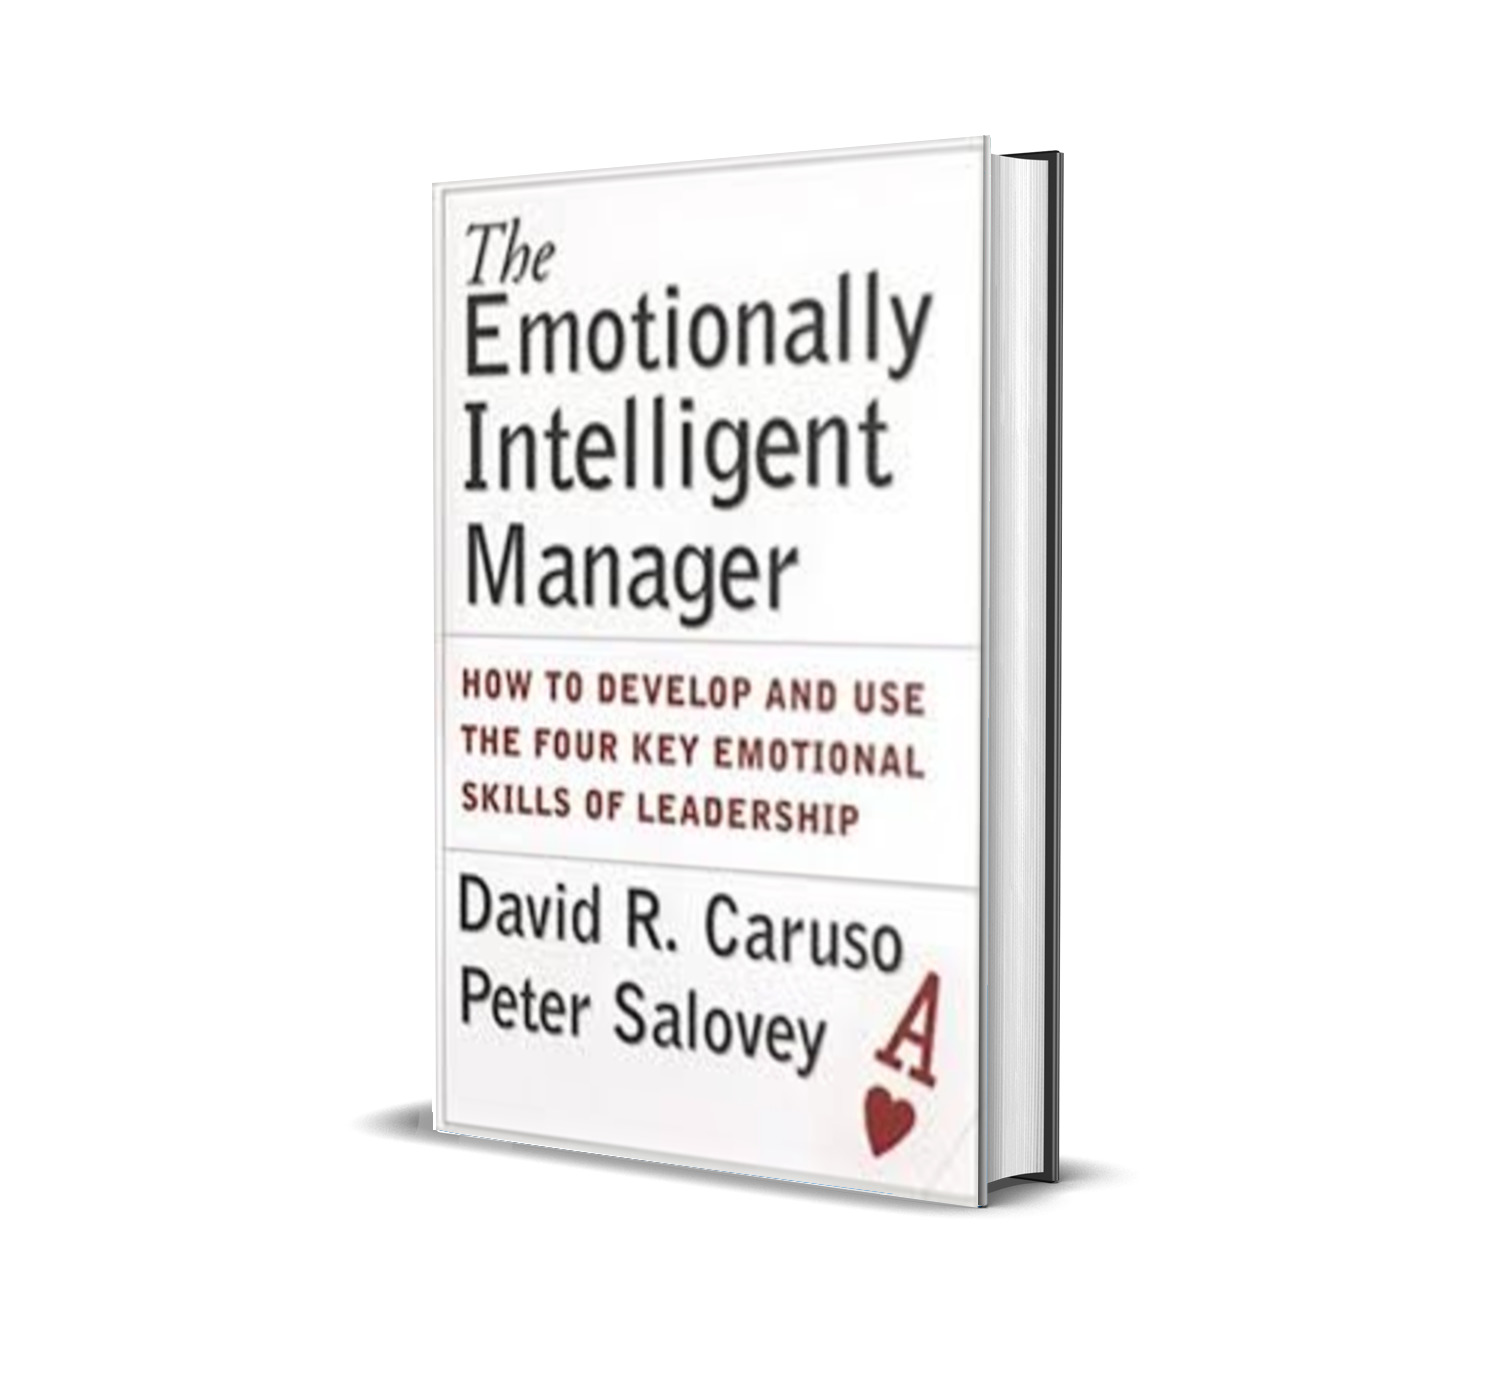 The Emotionally Intelligent Manager - David Caruso